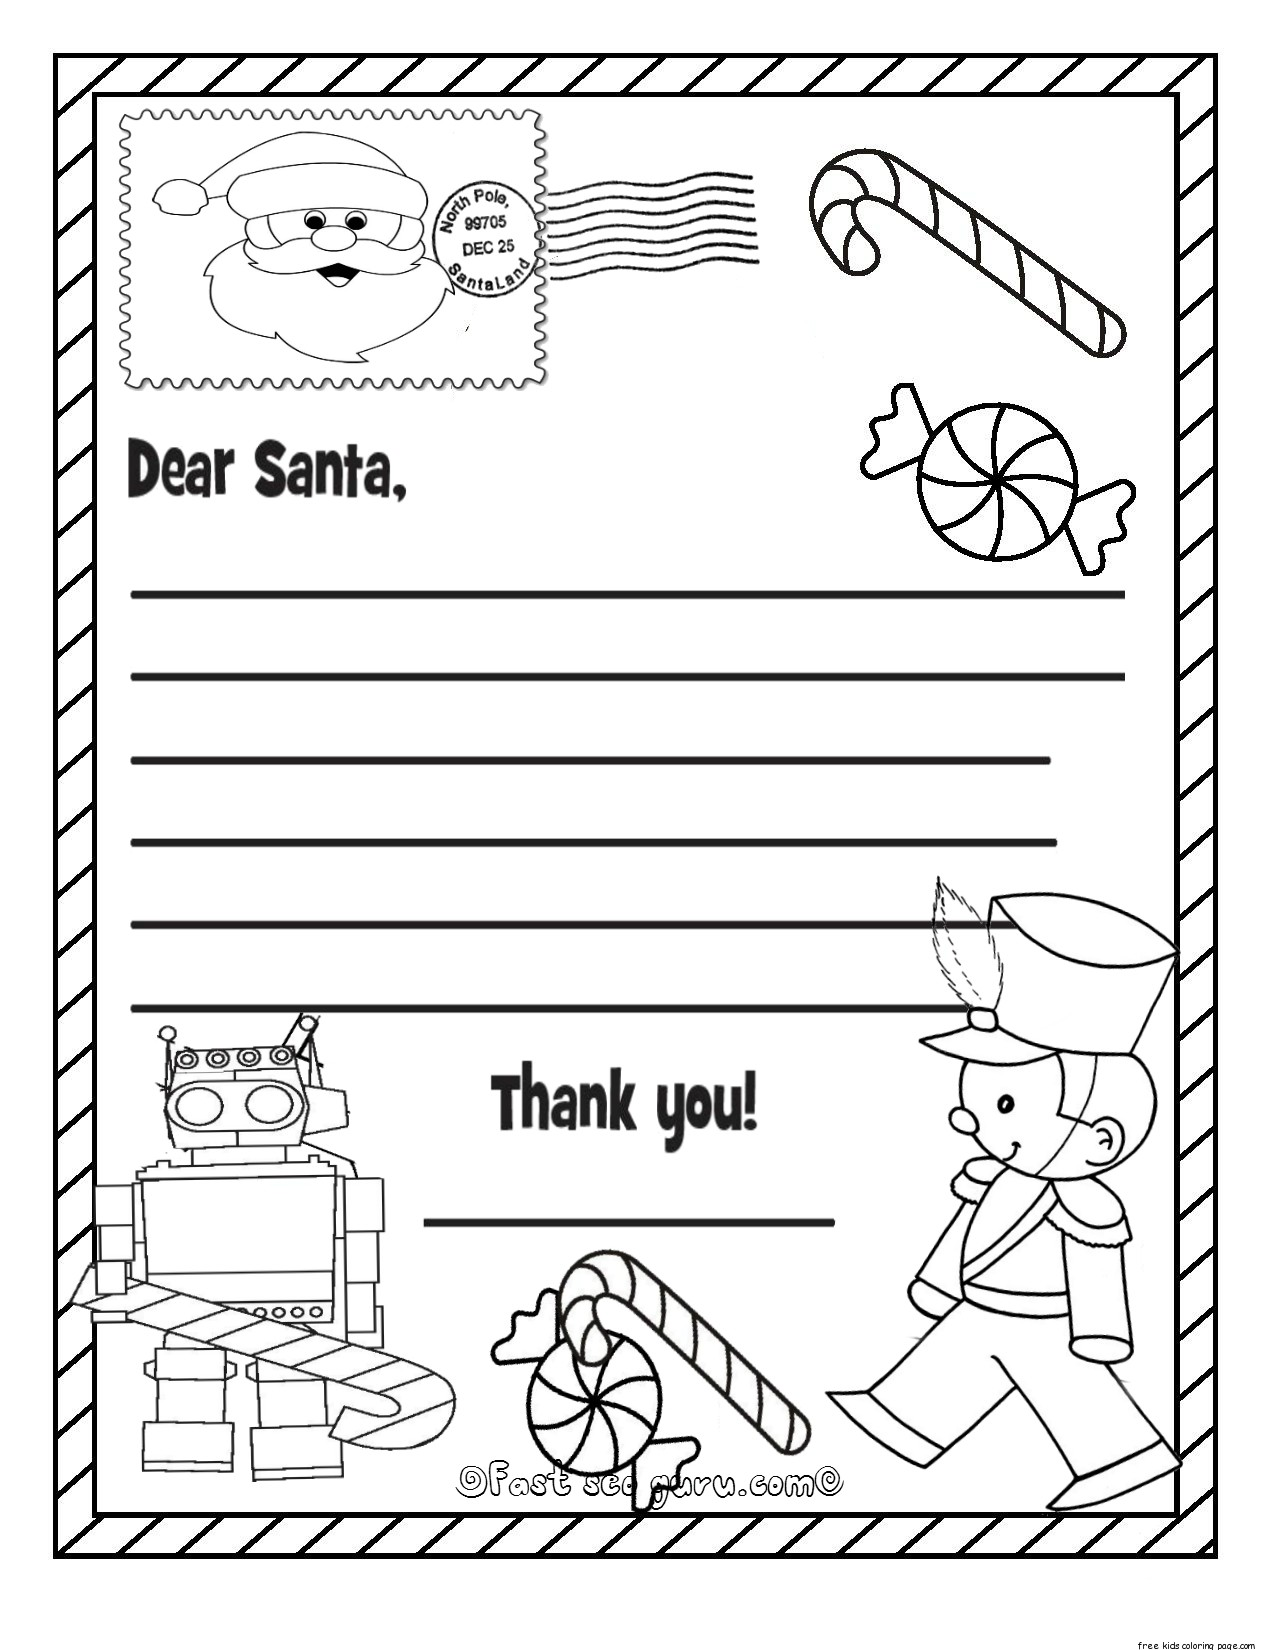 Printable christmas wish list to santa claus for kids for kidsFree